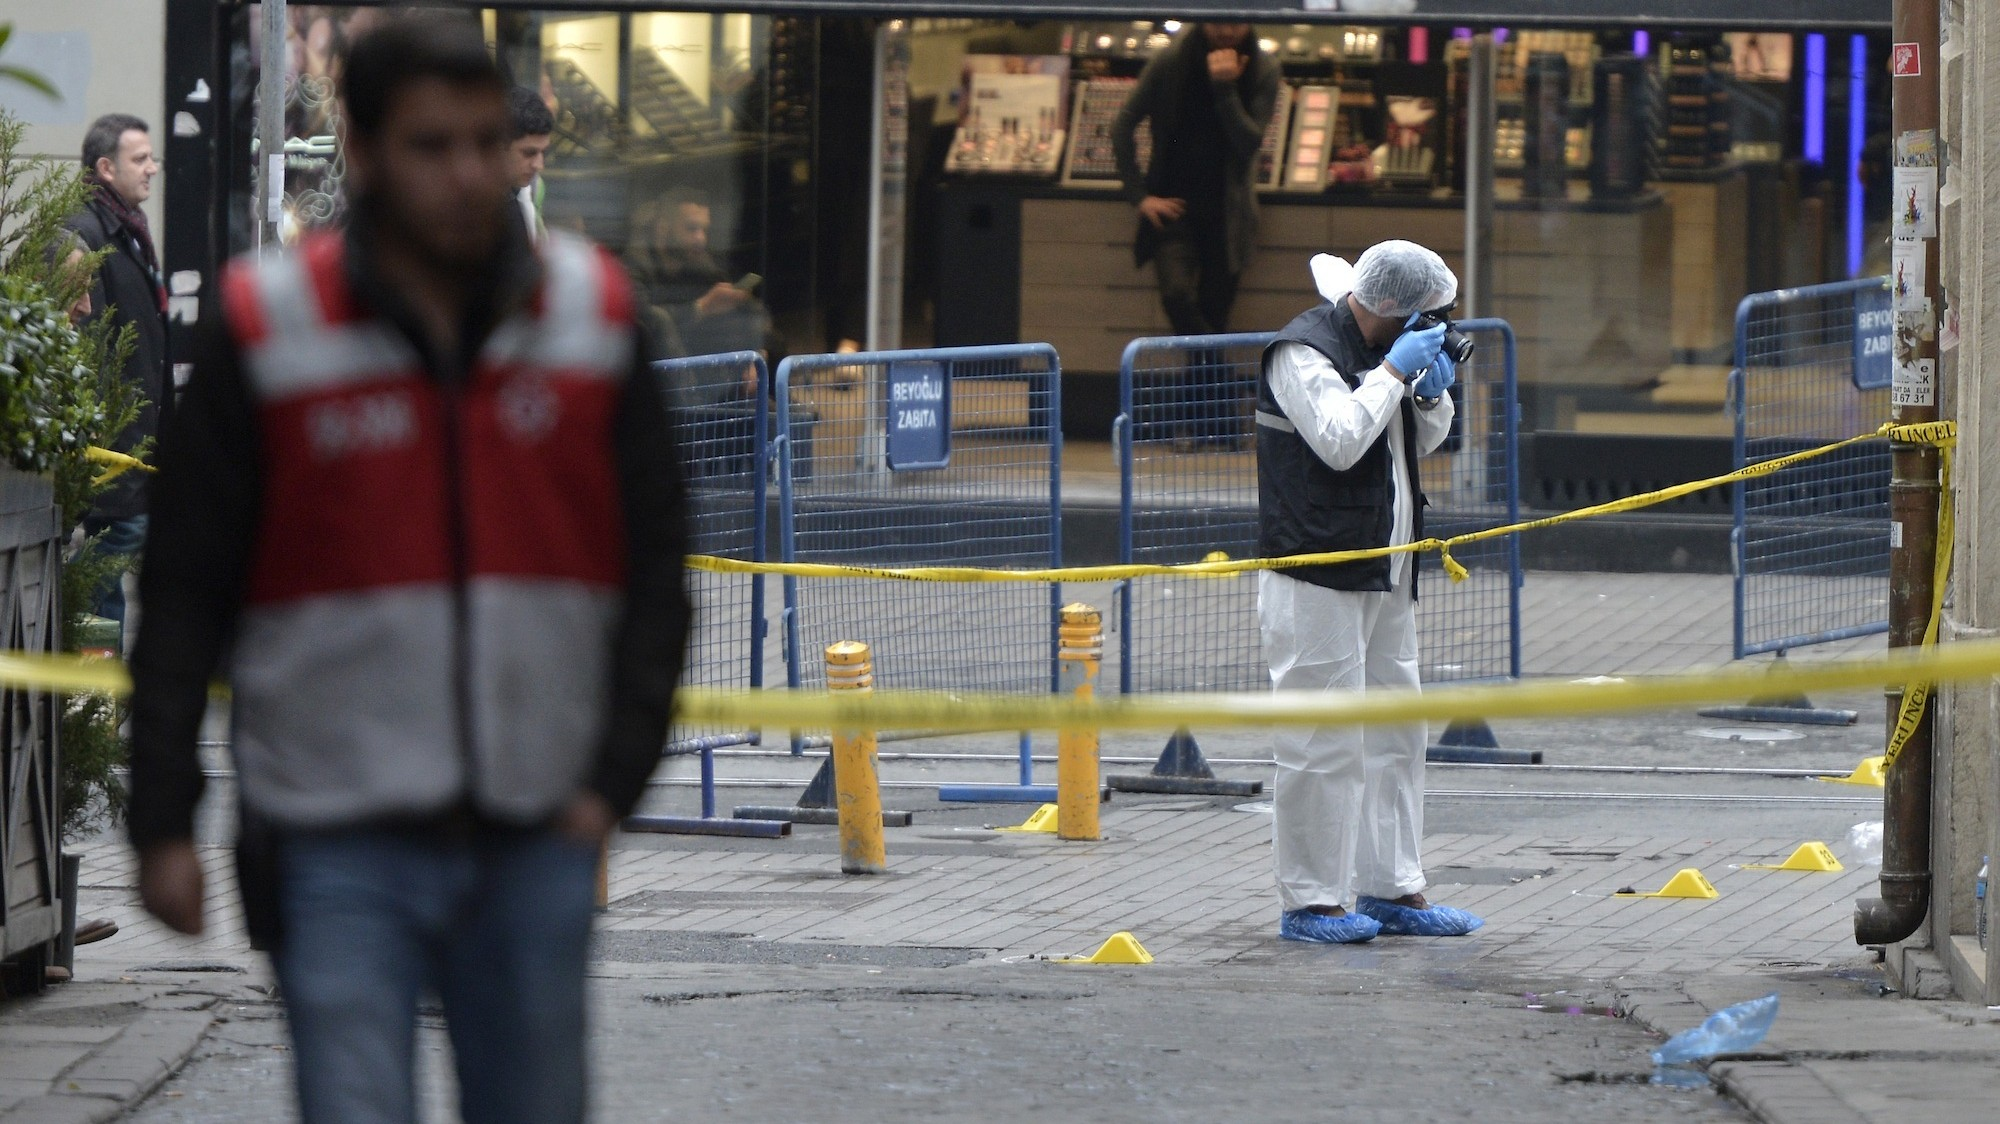 Turkish Islamic State Member Identified as Suicide Bomber in Deadly Istanbul Blast